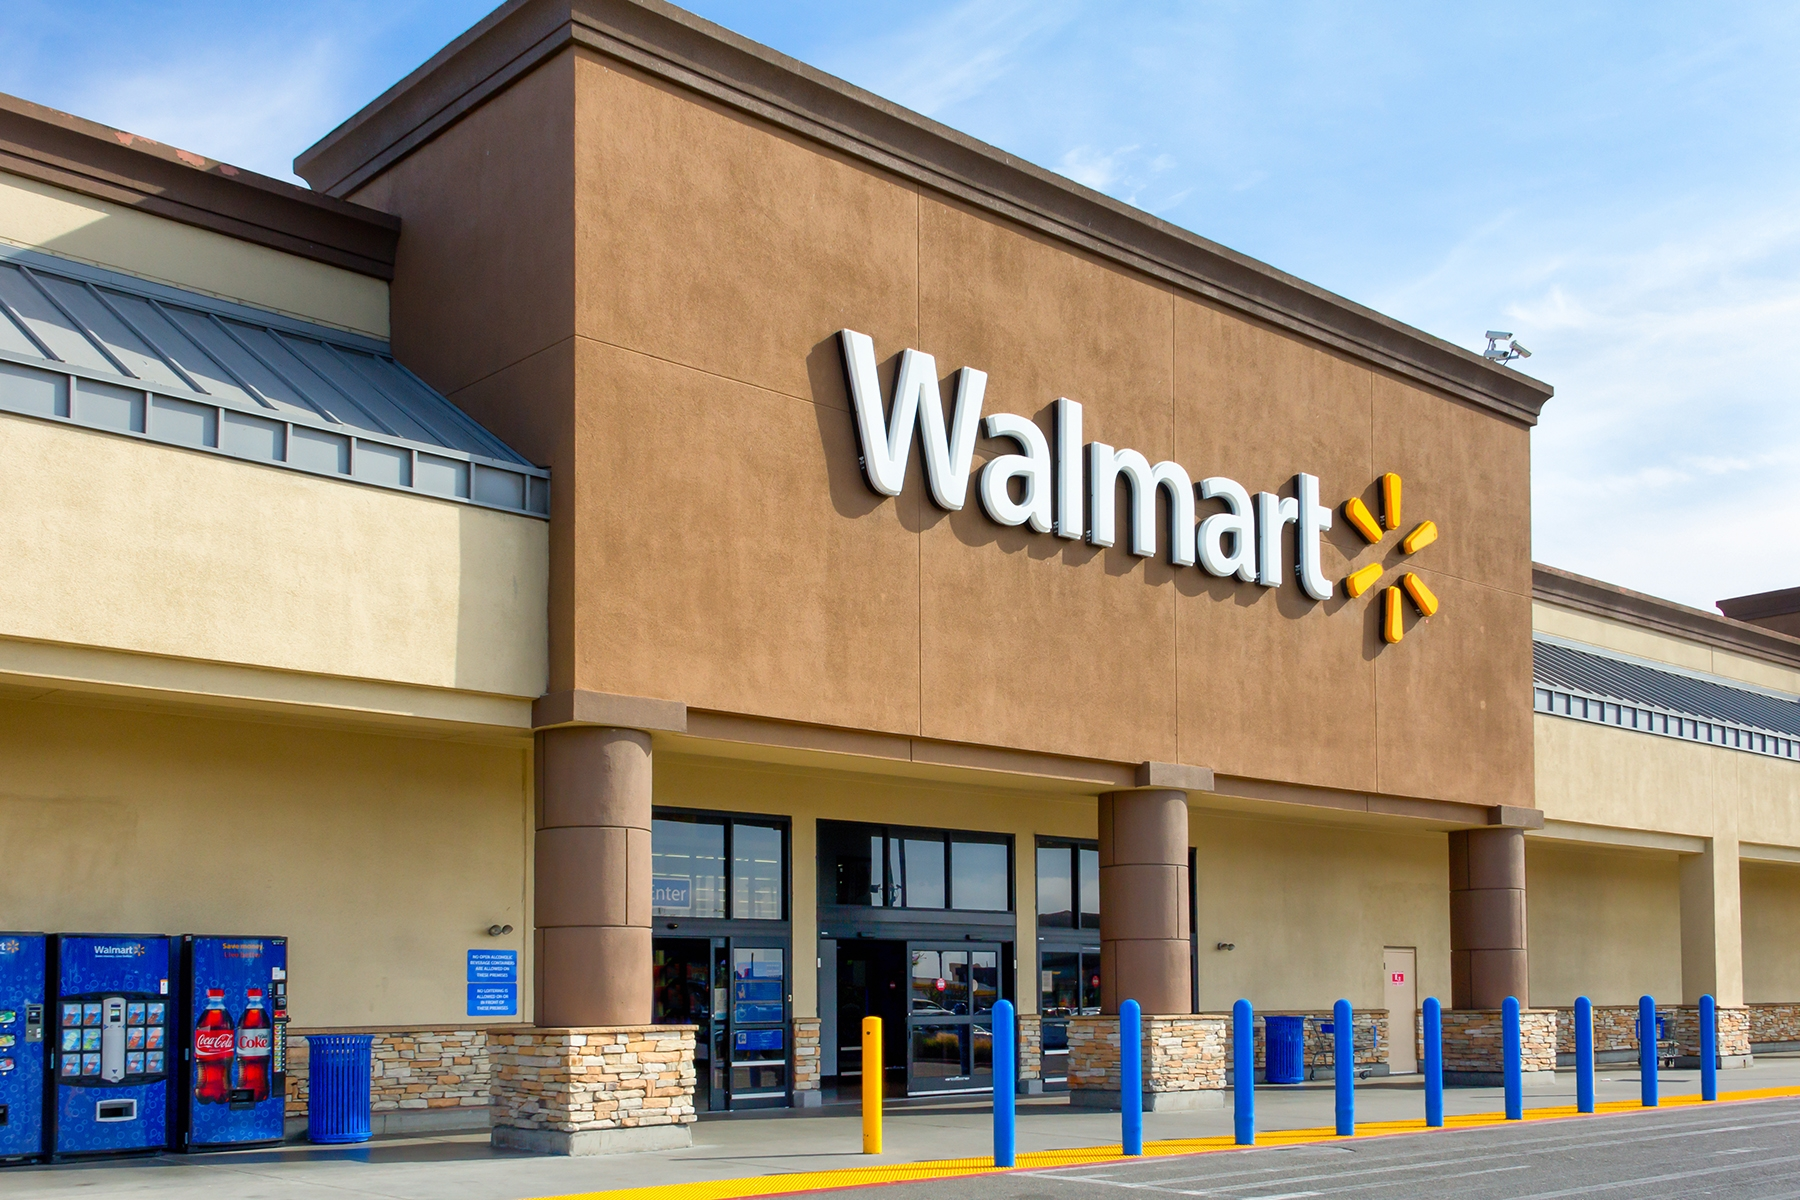 WALMART IS LAUNCHING A CRYPTO COIN